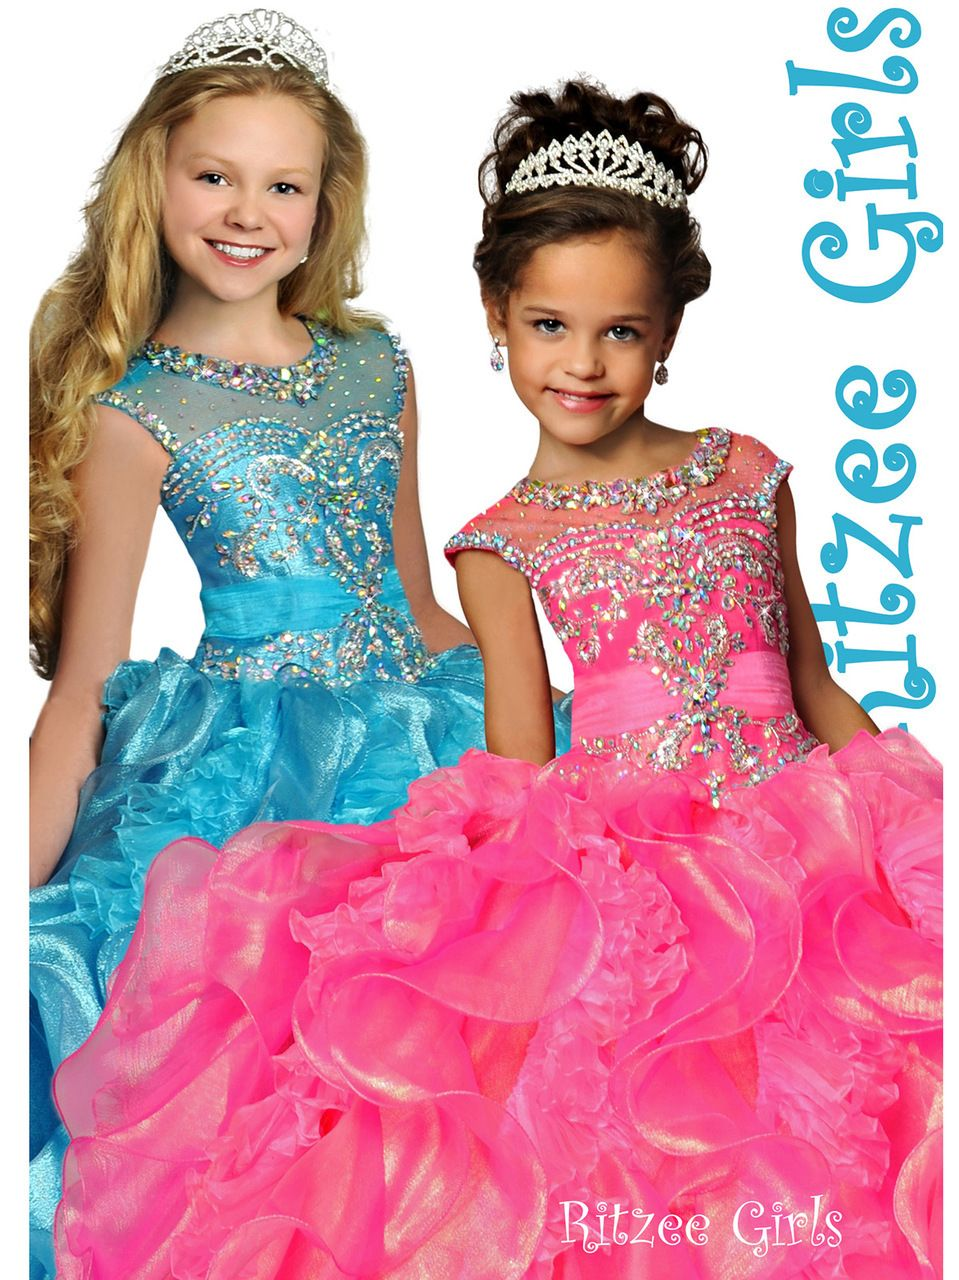 Turquoise Pageant Gown Ritzee Girls 6793 | Ritzee Girls Pageant ...